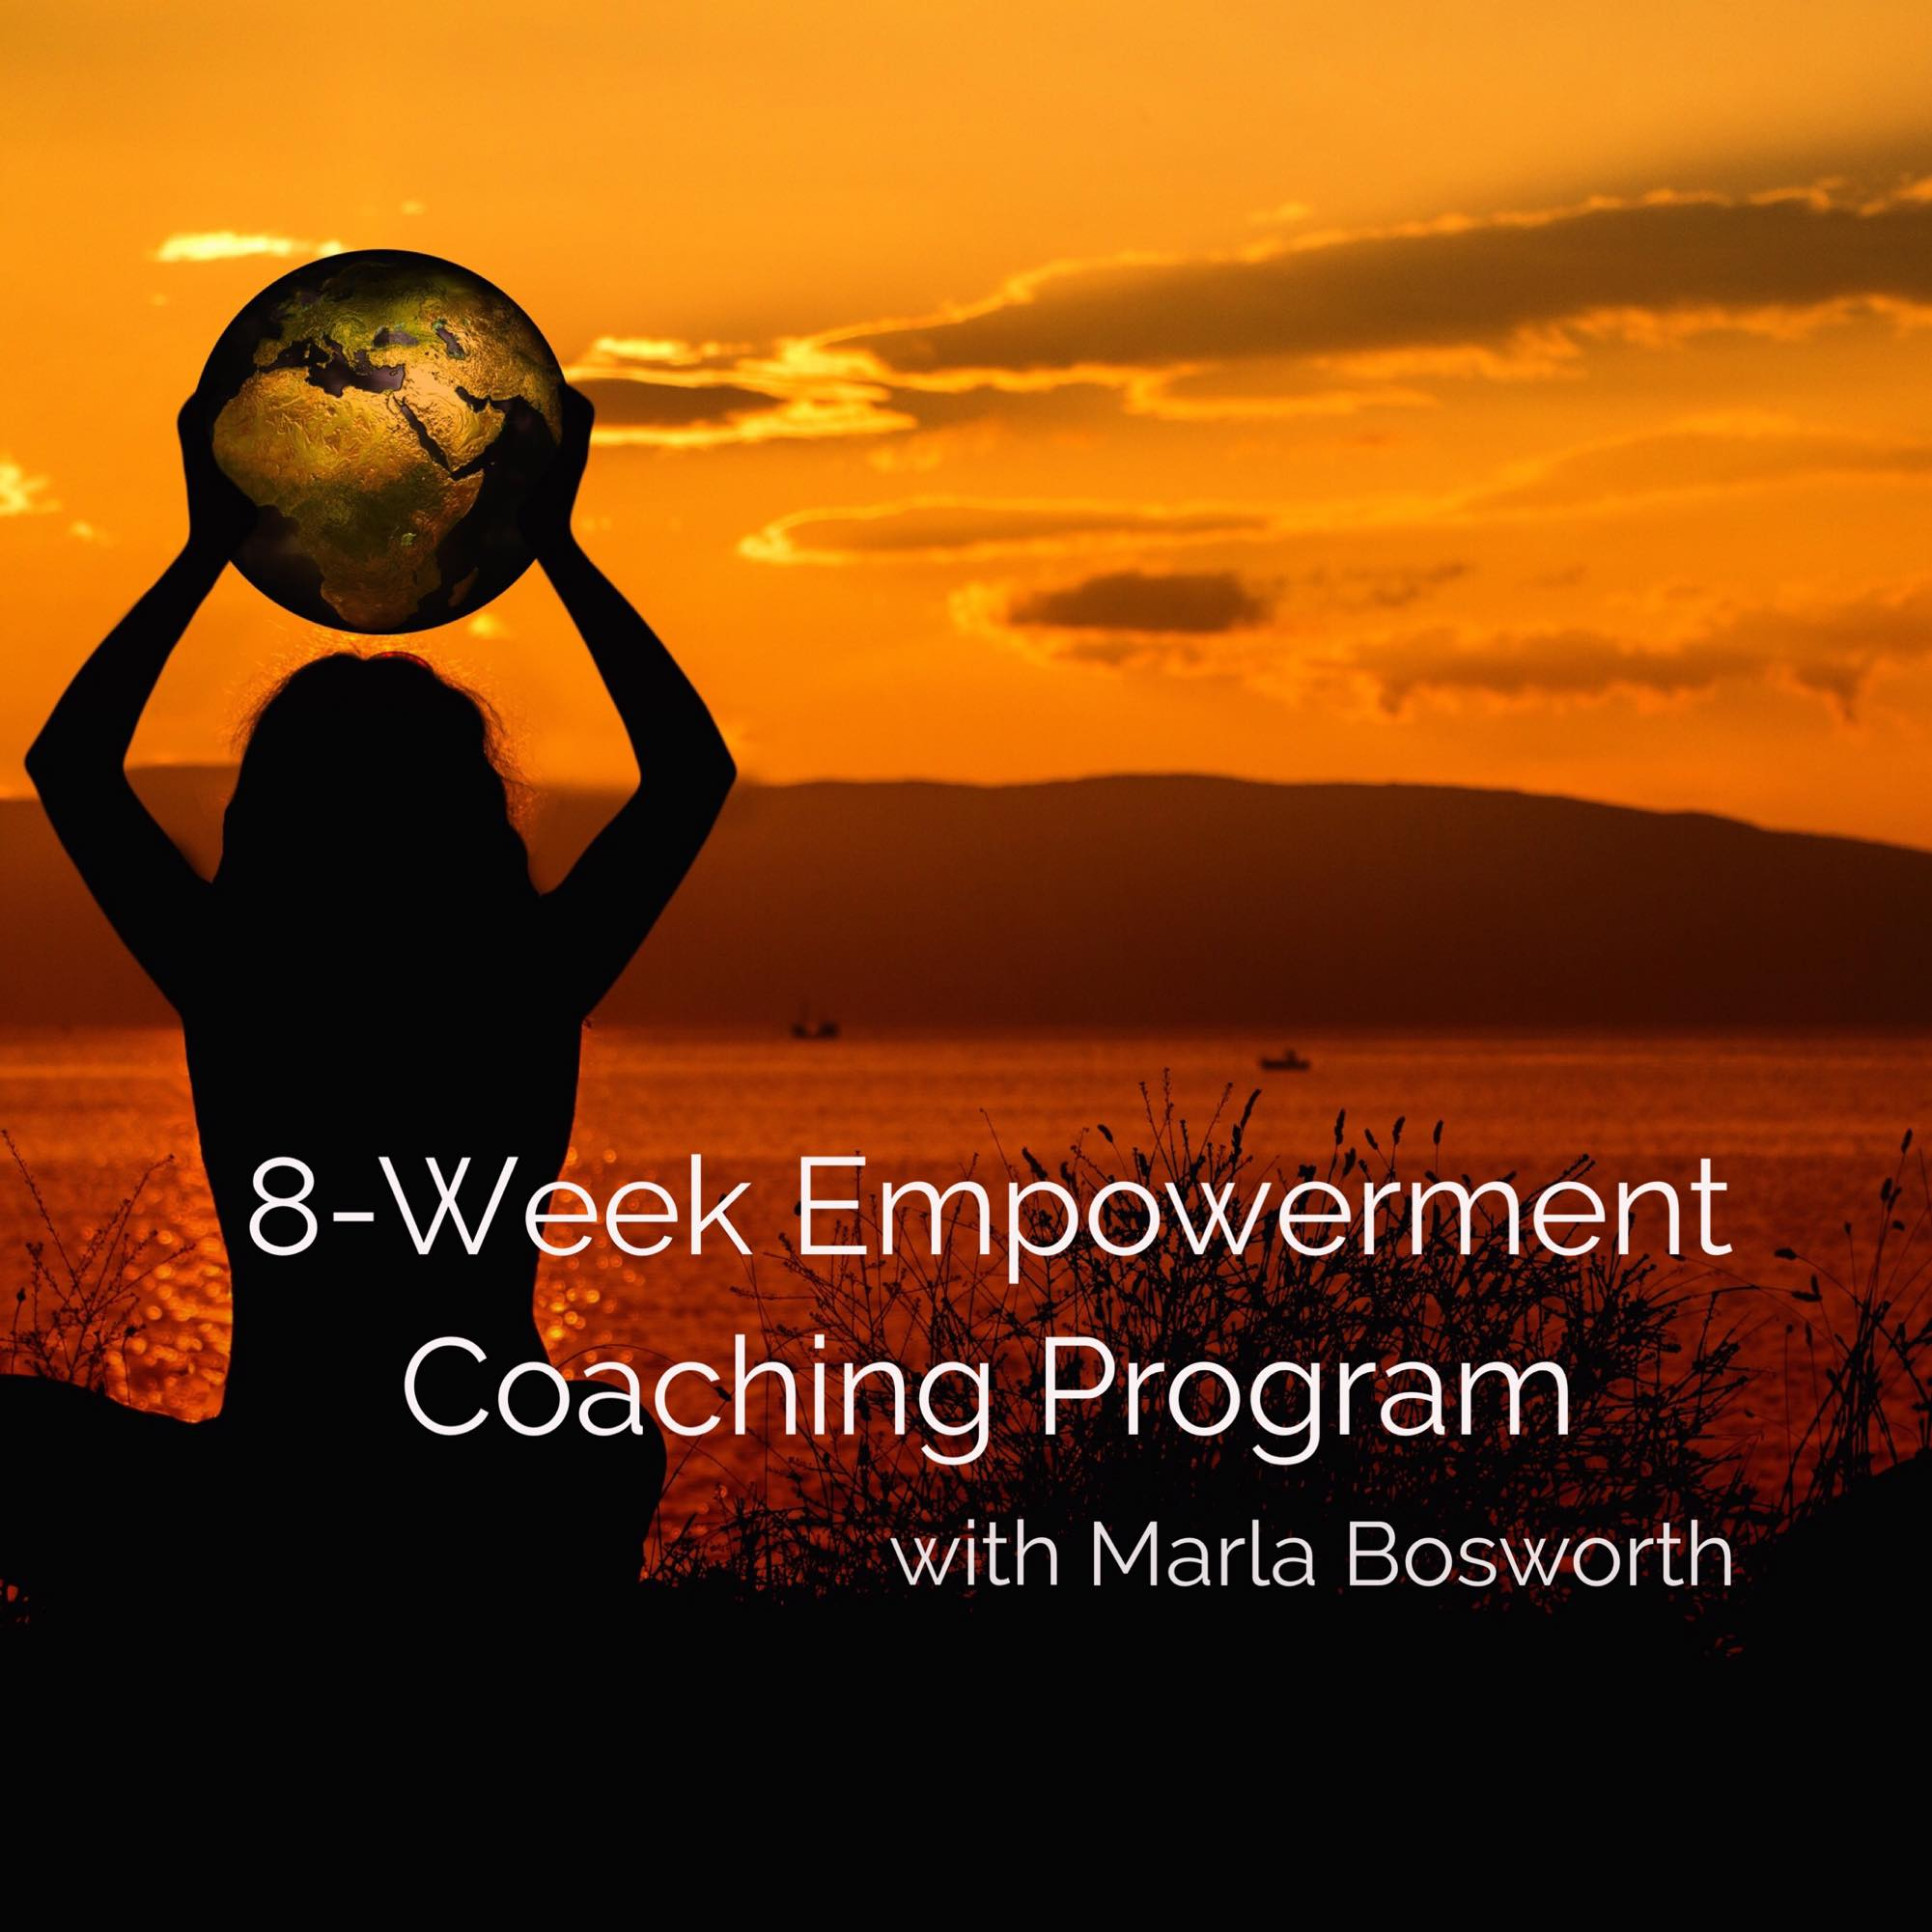 8-Week Empowerment Coaching Session